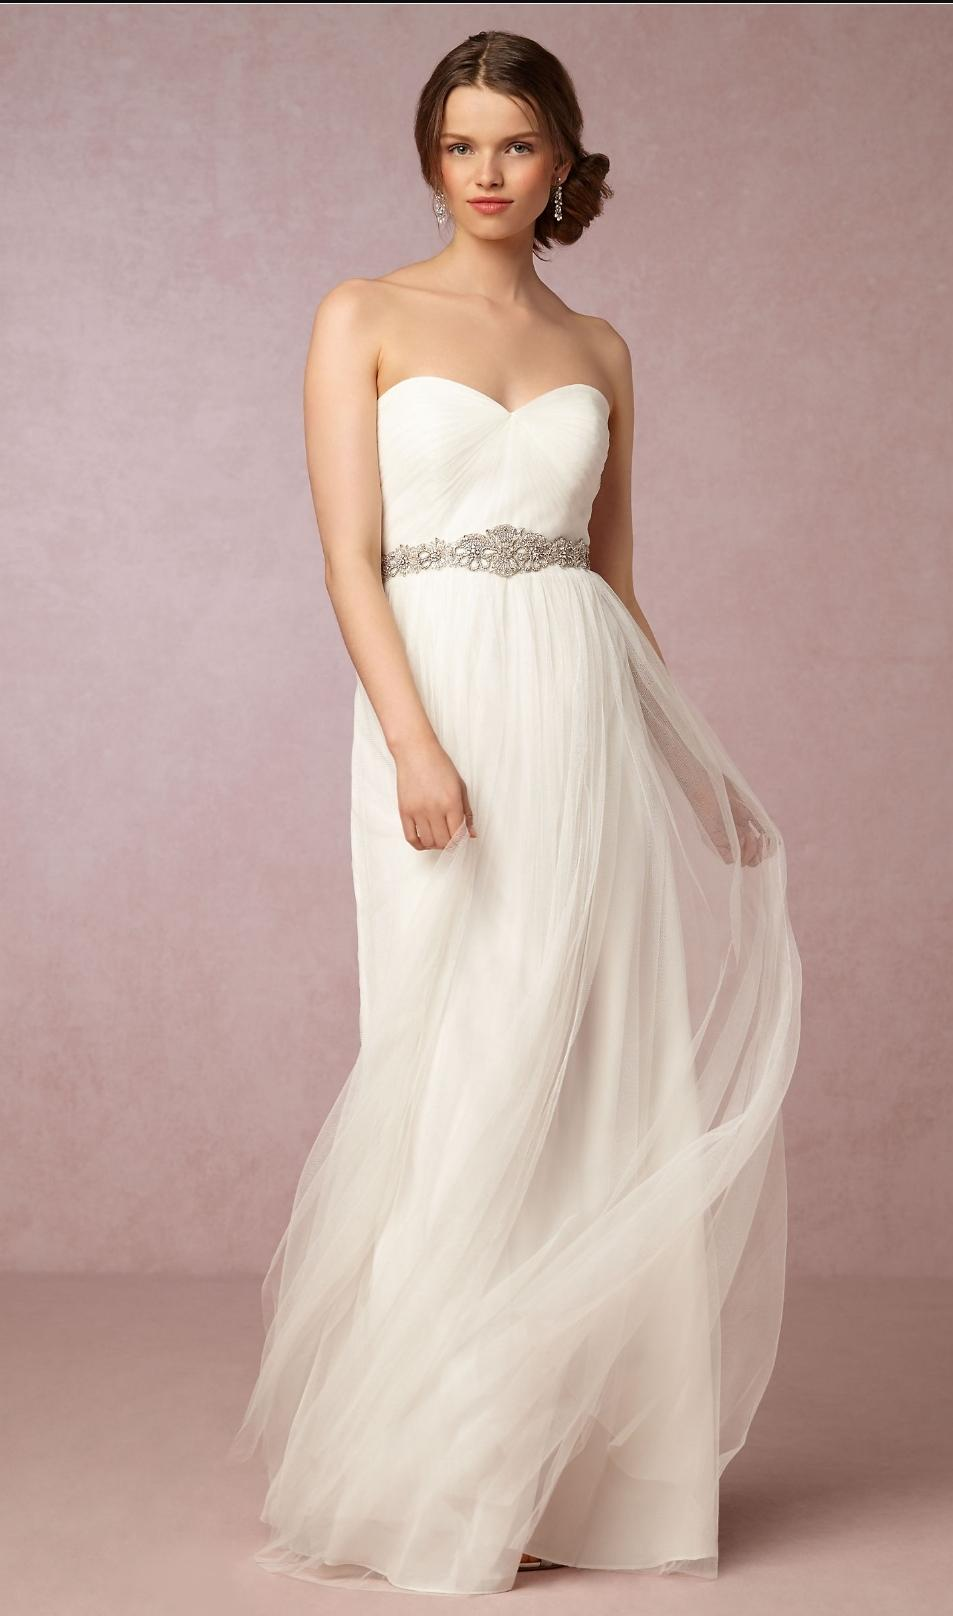 Jenny Yoo Ivory Tulle Annabelle From Bhldn Never Worn Destination Wedding  Dress Size 12 (L